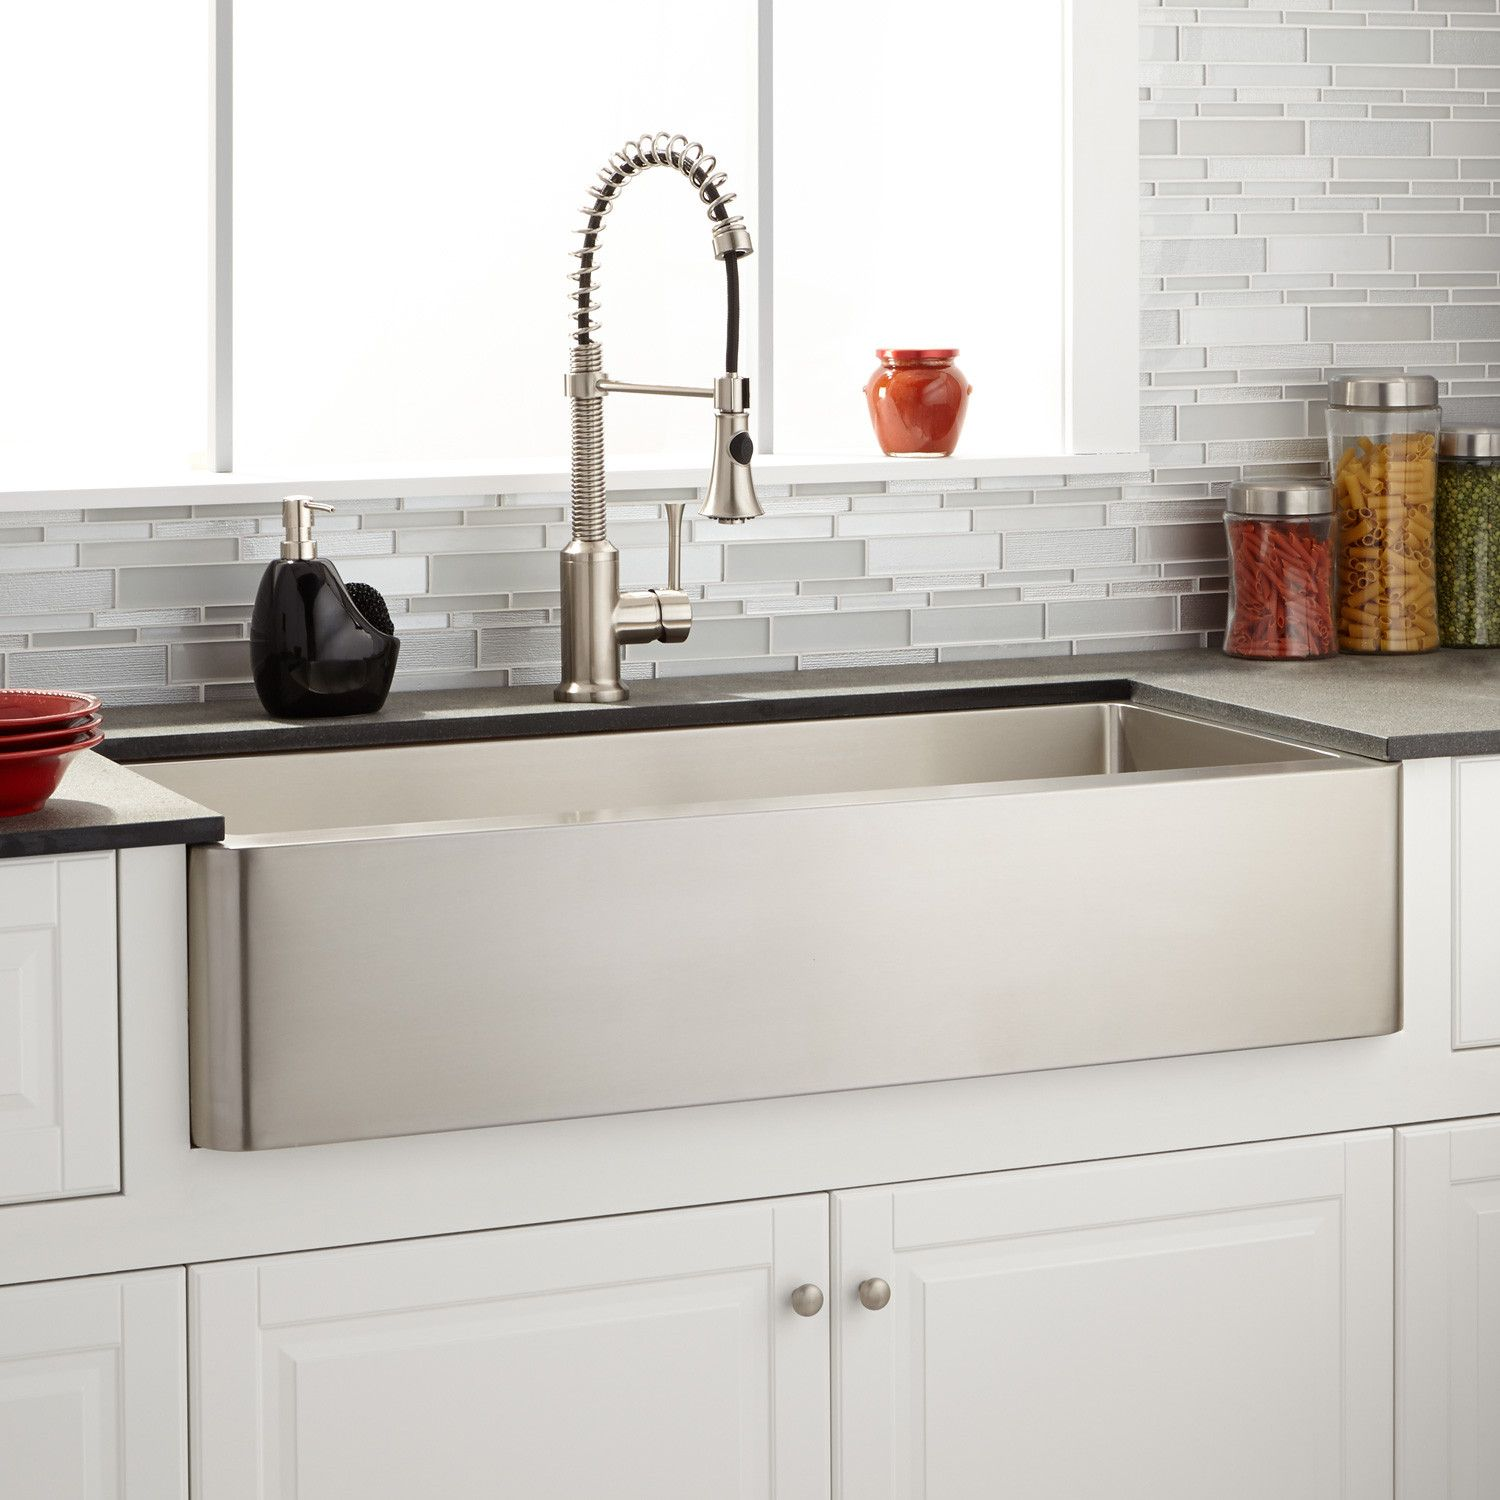 42 Hazelton Stainless Steel Farmhouse Sink Farmhouse Sinks